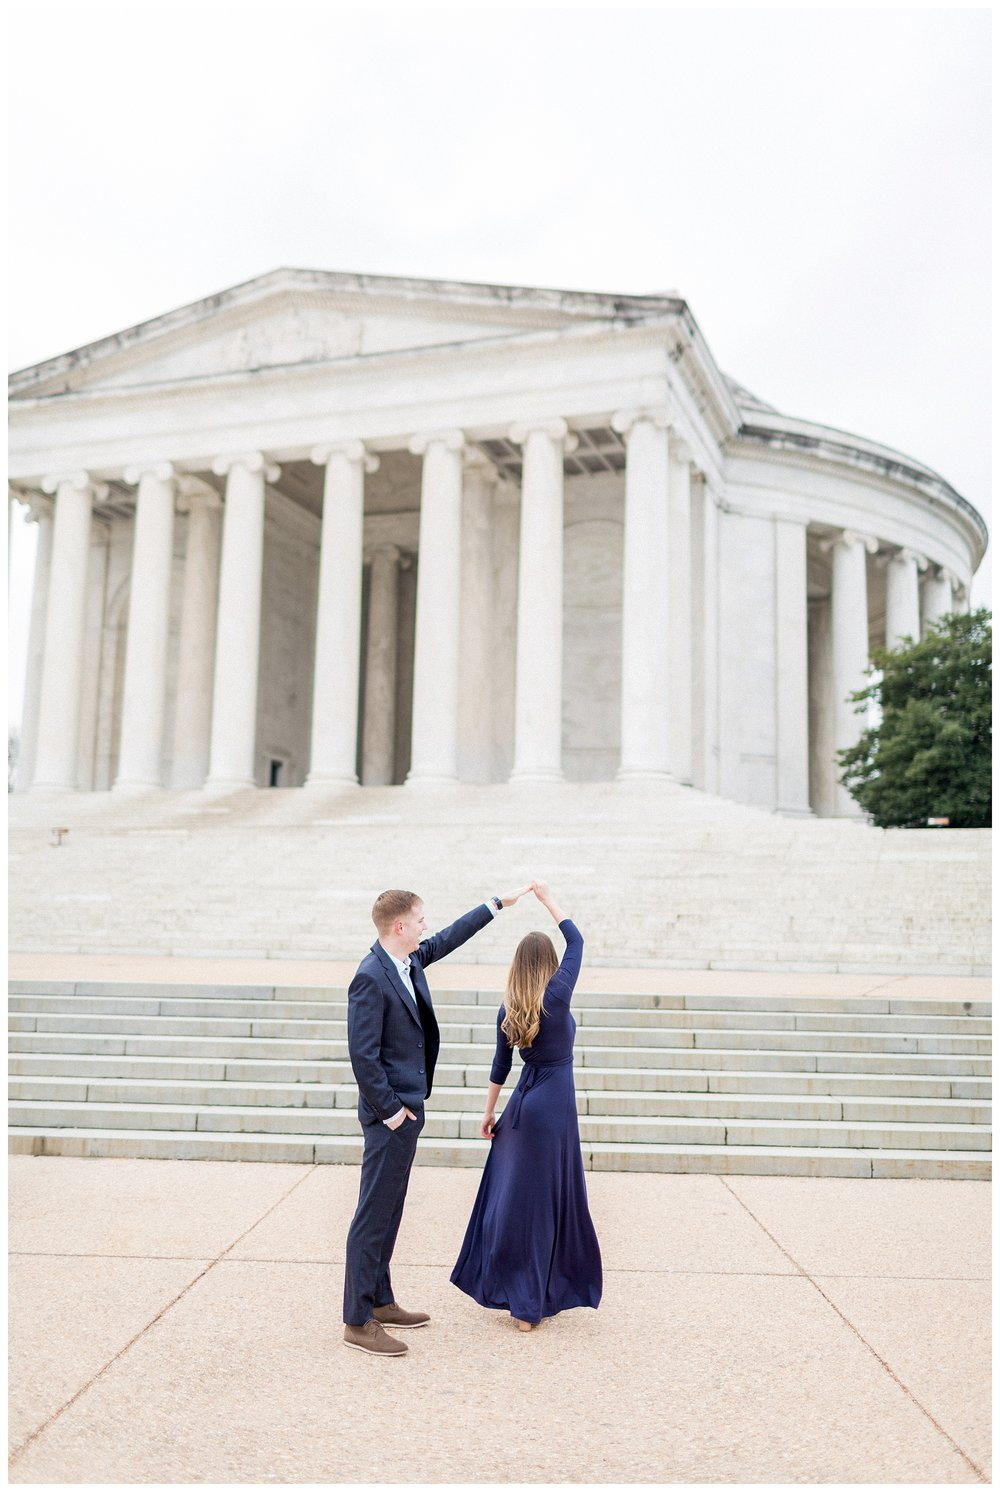 Washingon DC Engagement Photos | Jefferson Memorial Engagement | Kir Tuben_0010.jpg